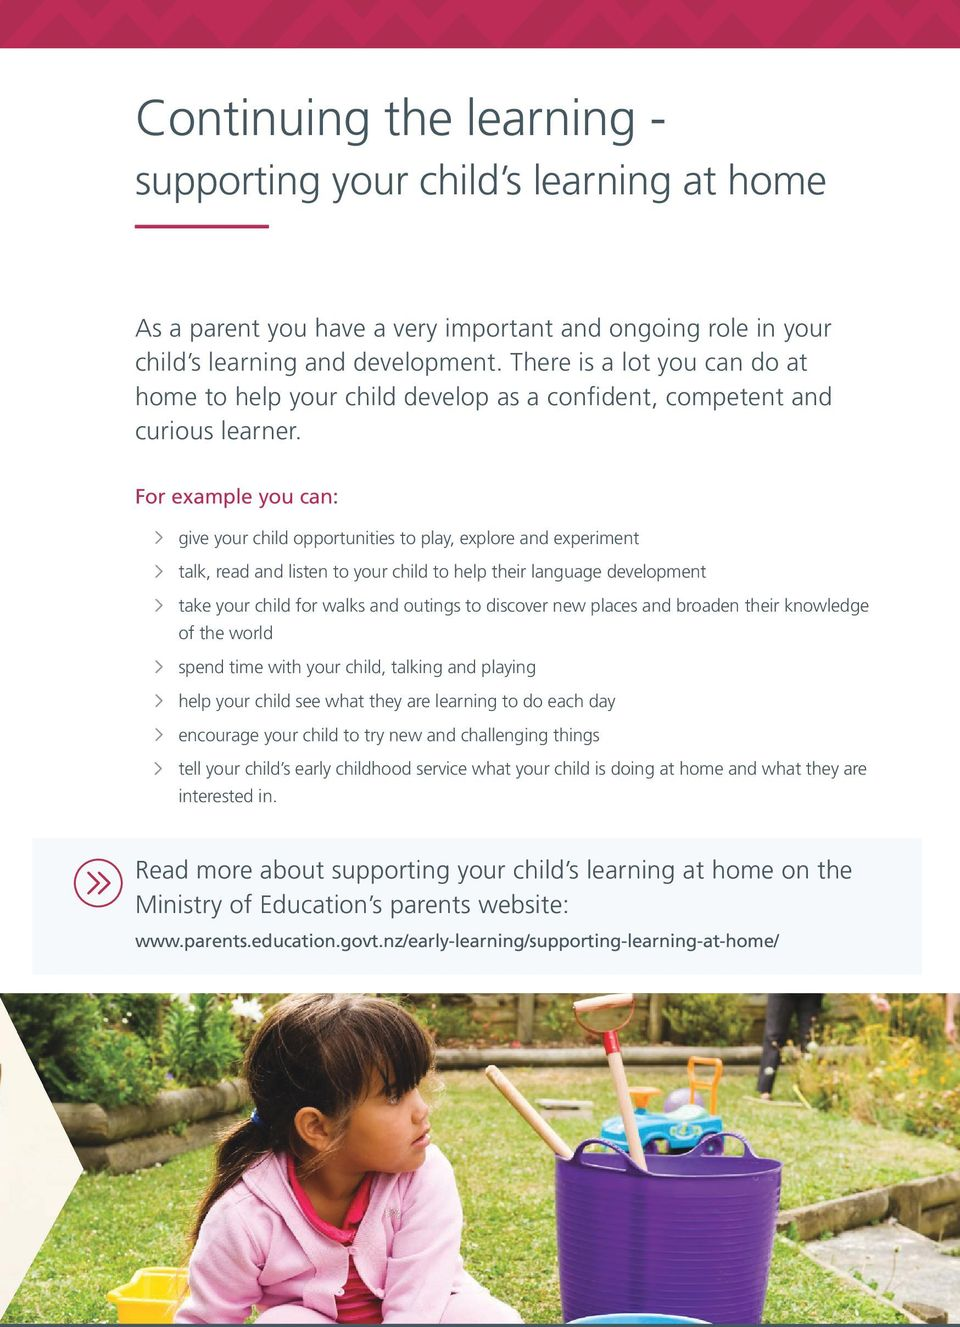 For example you can: give your child opportunities to play, explore and experiment talk, read and listen to your child to help their language development take your child for walks and outings to